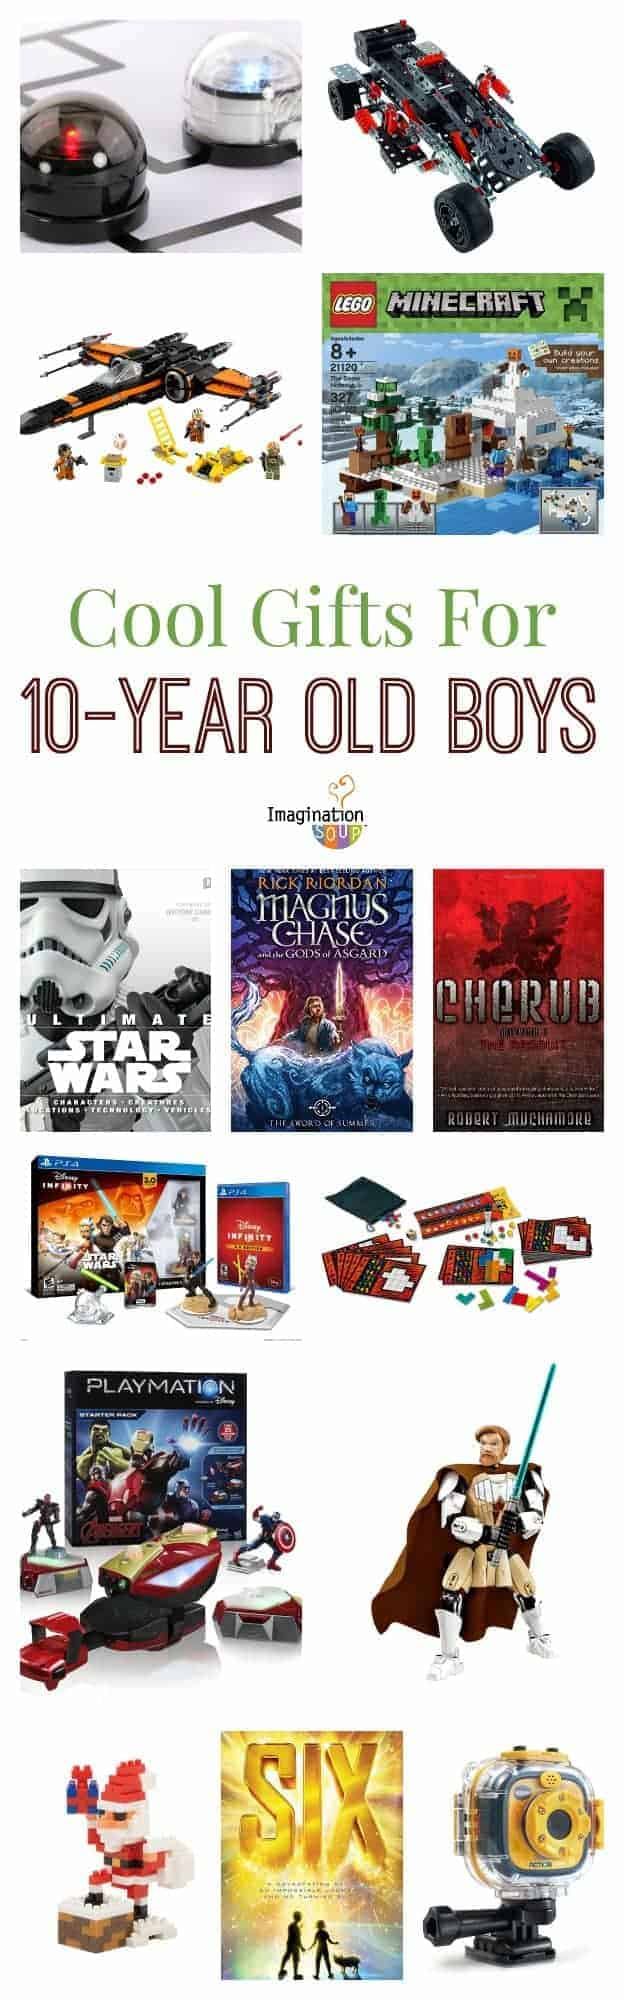 gifts for 10 year old boys imagination soup - 11 Year Old Boy Christmas Gift Ideas